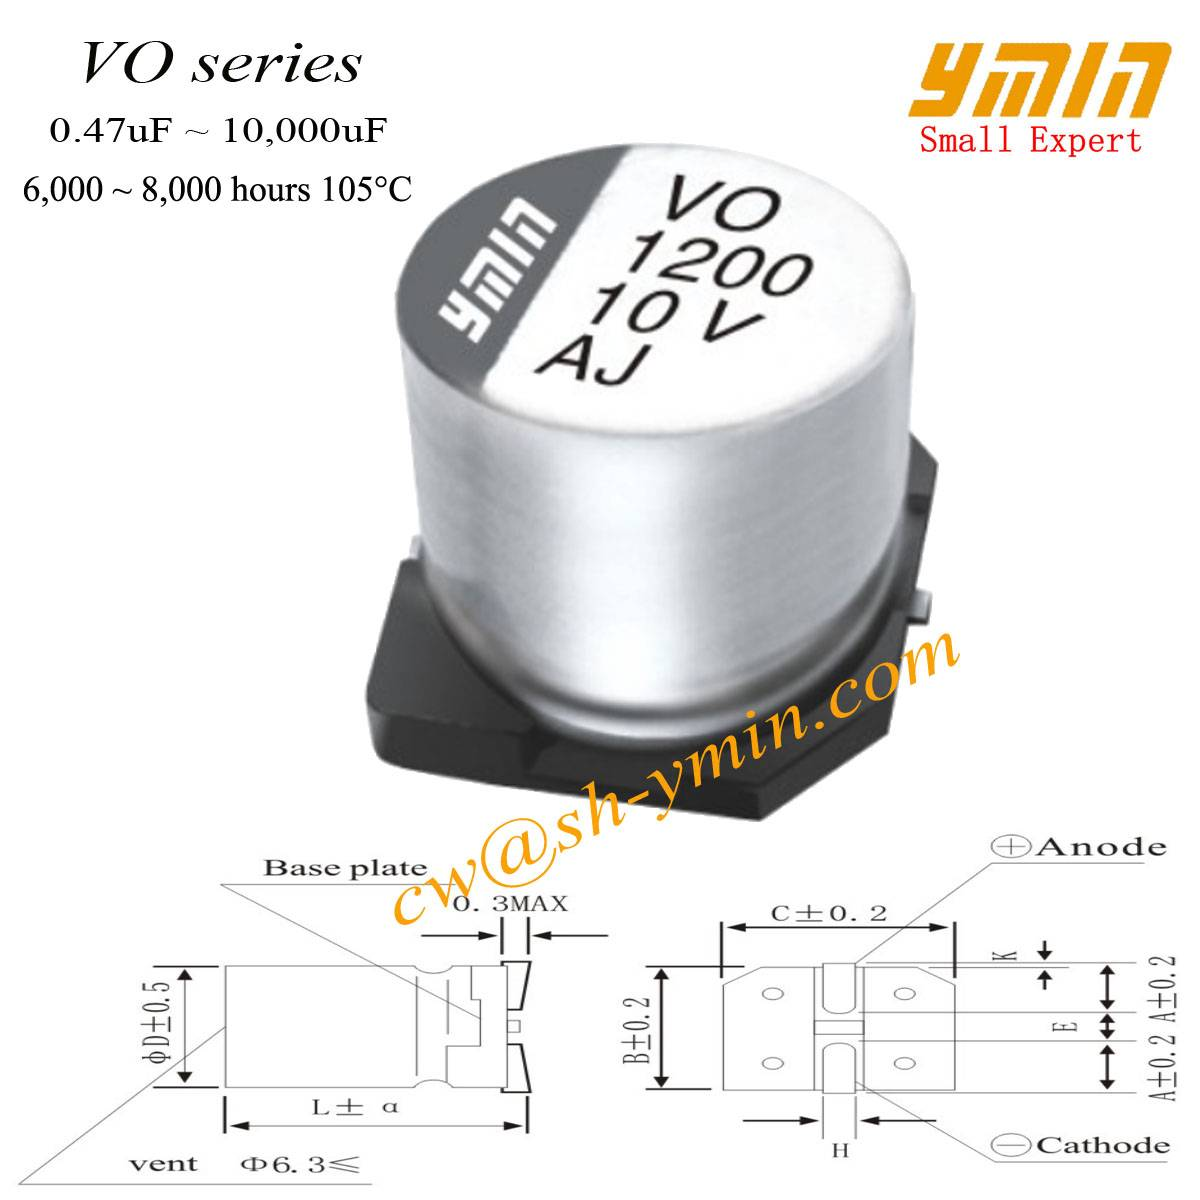 SMD Capacitor Electrolytic SMD Capacitor for Lighting and General Purpose